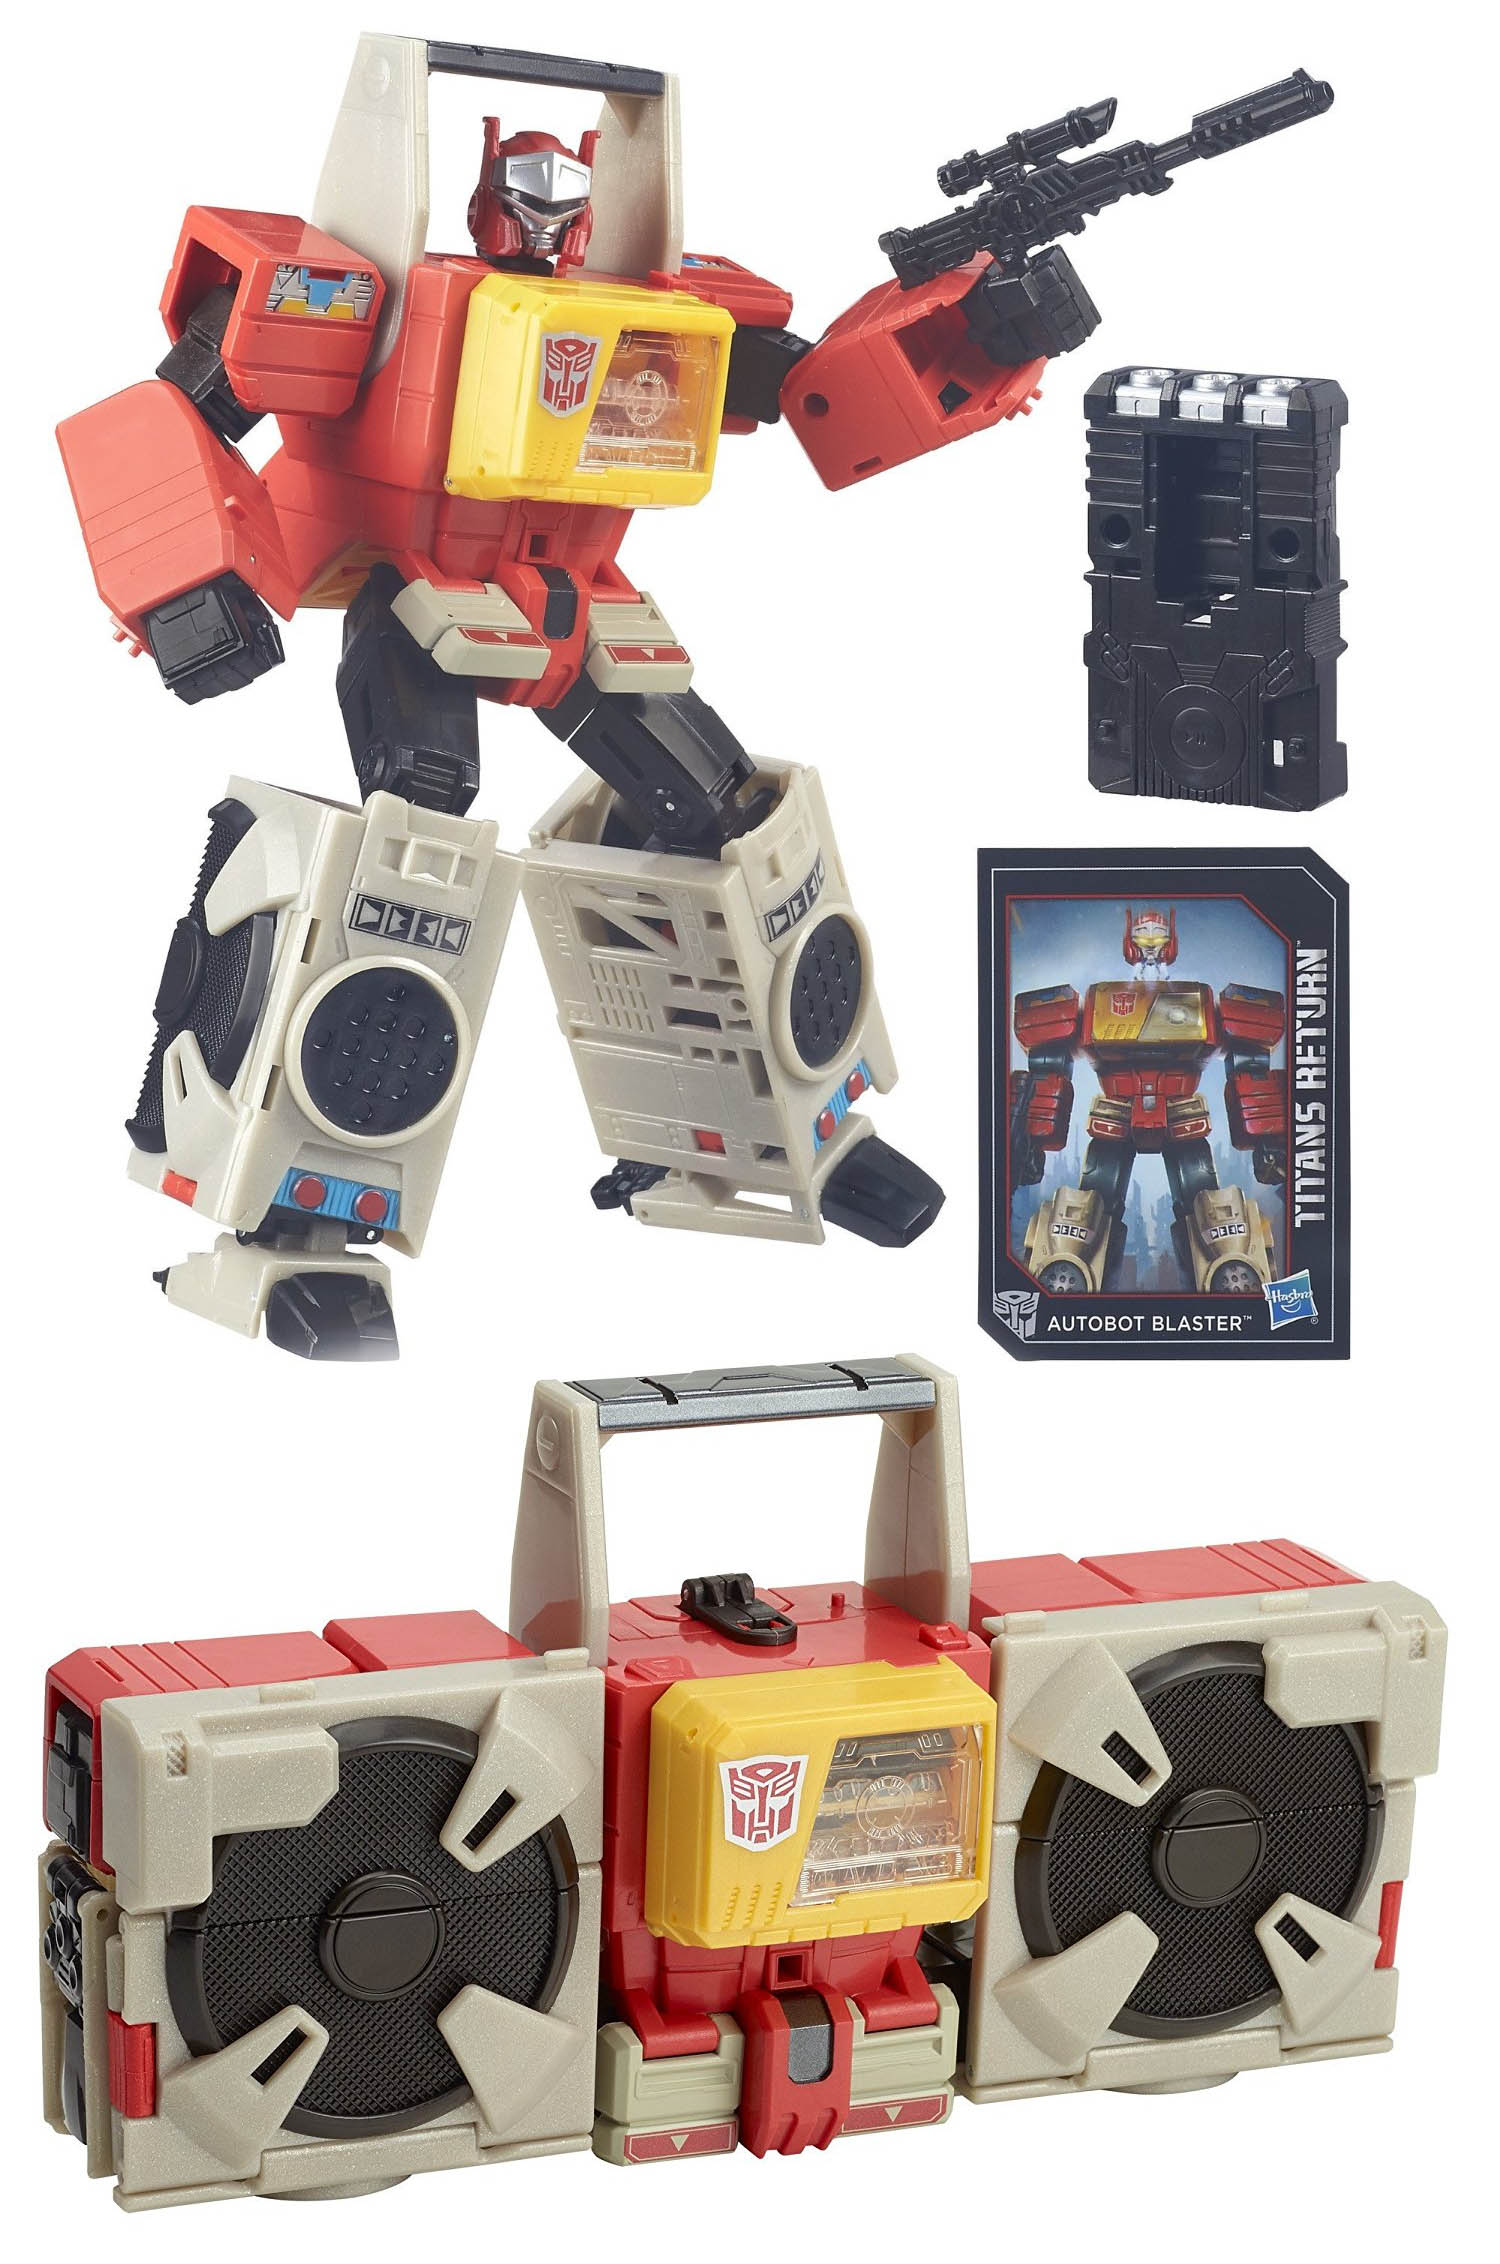 Transformers Generations Titans Return Leader Class Autobot Blaster and Twin Cast